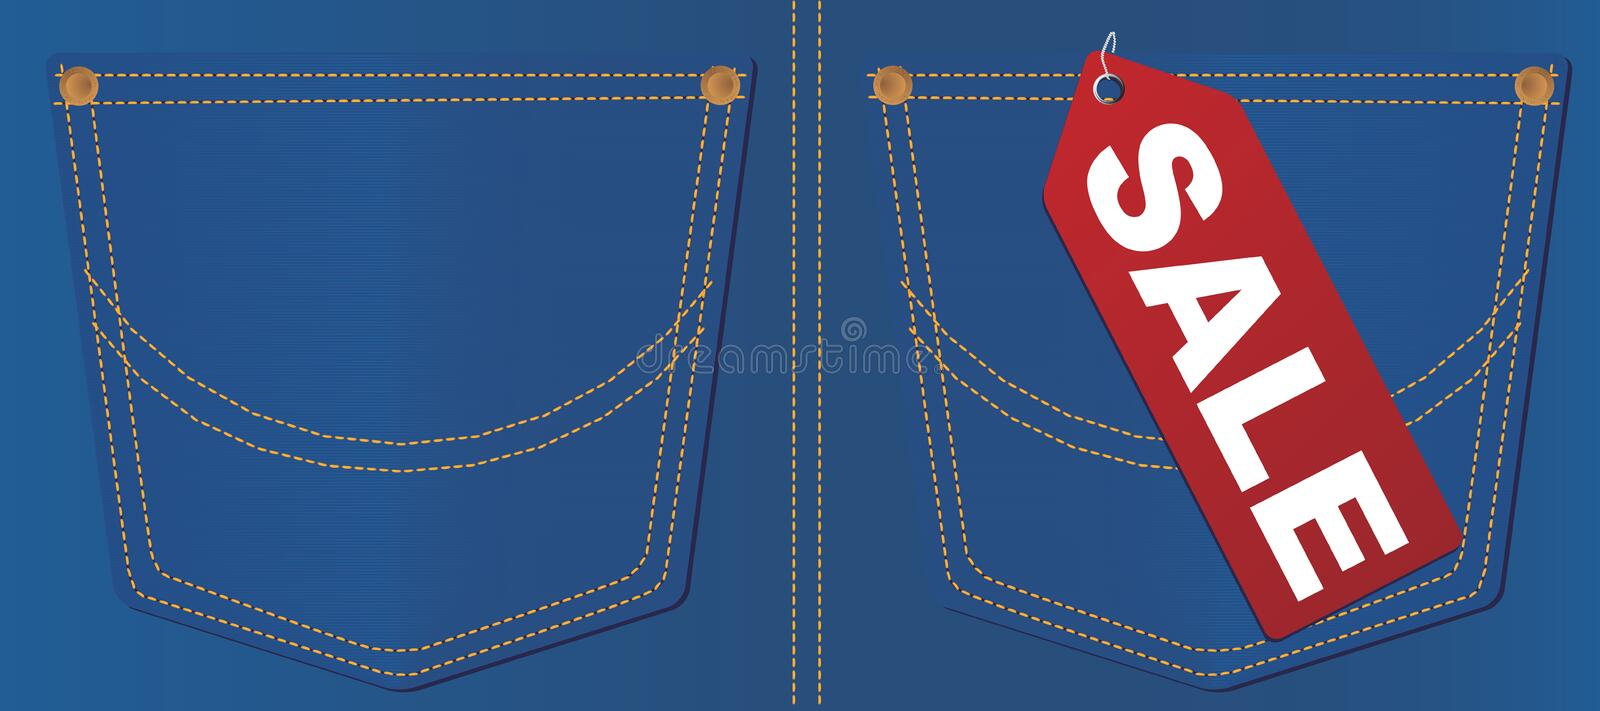 Tasca dei jeans con la modifica di vendita royalty illustrazione gratis